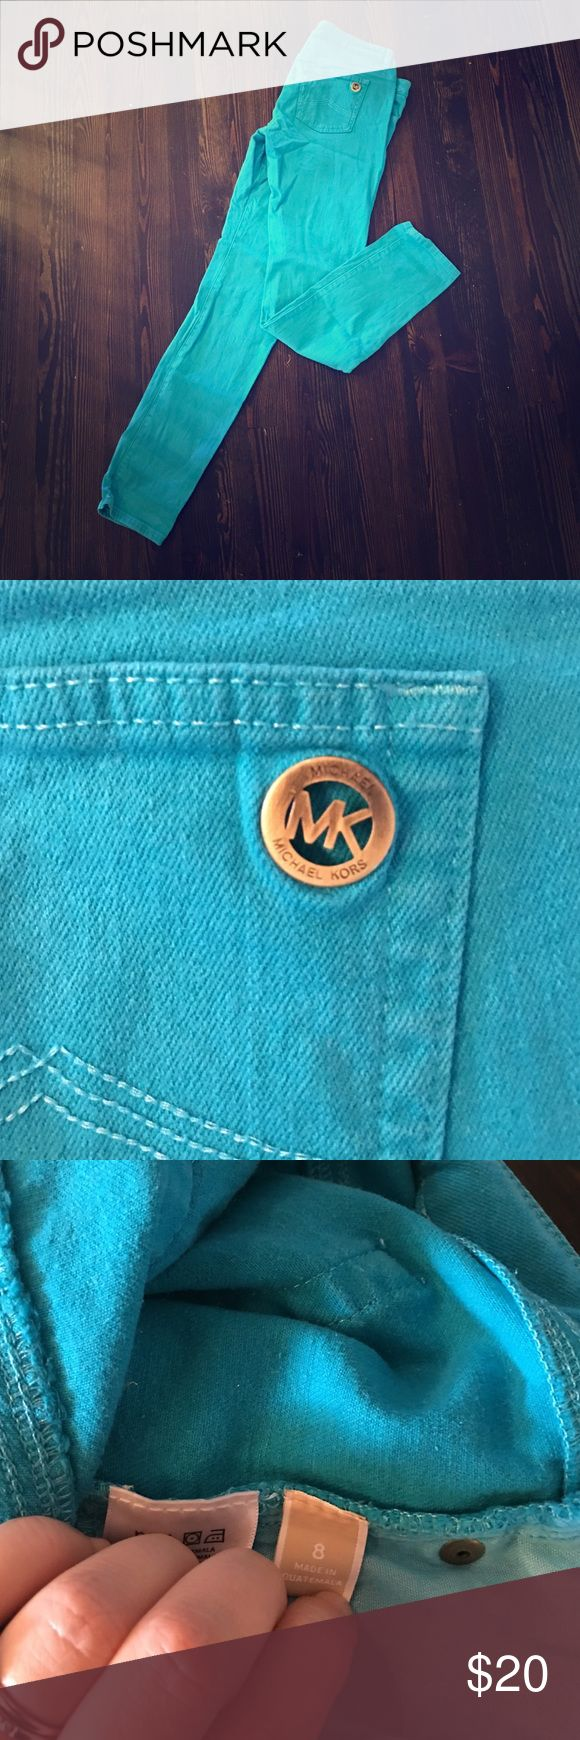 Michael Kors Teal Turquoise Jeans - Size 8 Michael Kors Teal Turquoise Jeans - Size 8. Worn twice.  No signs of wear and tear. Michael Kors Jeans